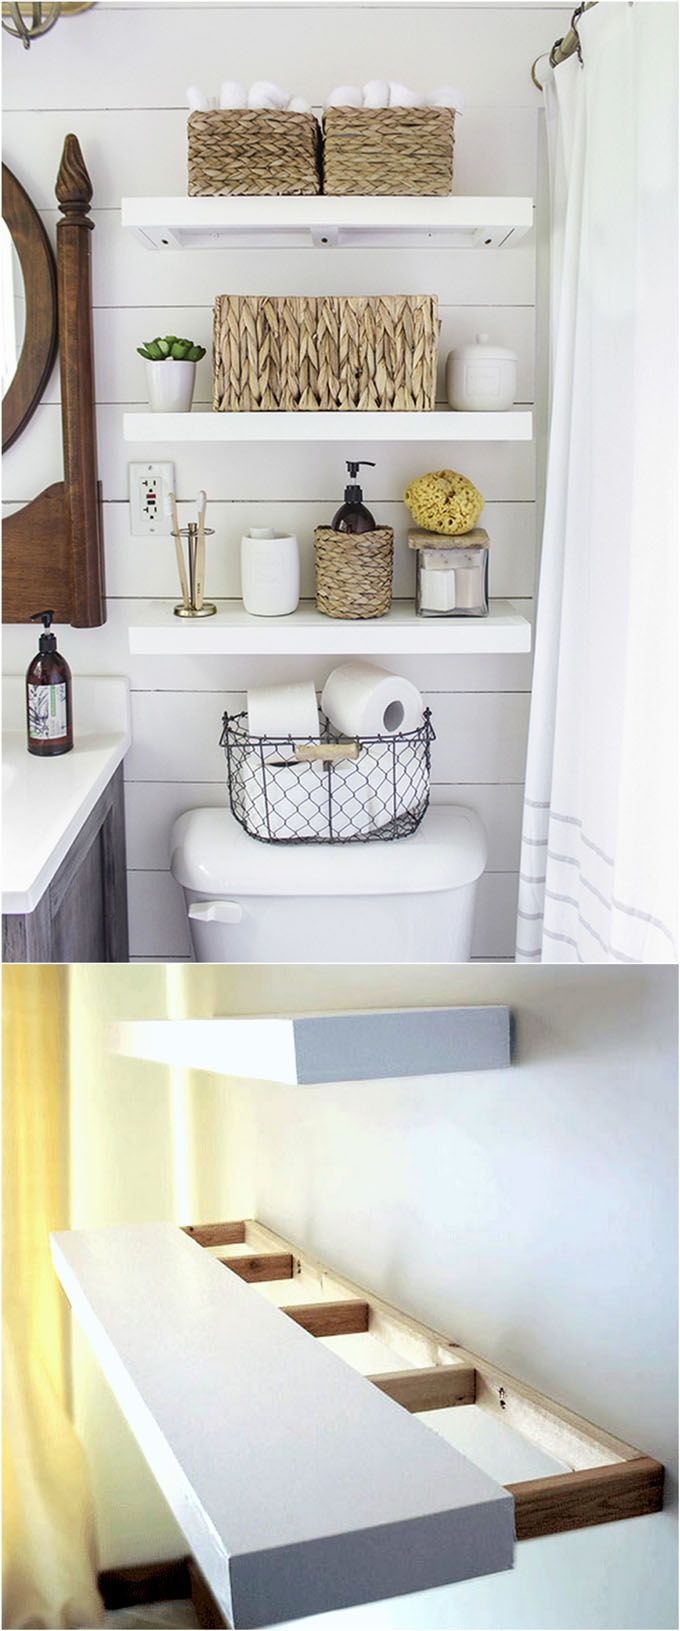 bathroom wall shelves ideas best 25 floating shelves bathroom ideas on 16194